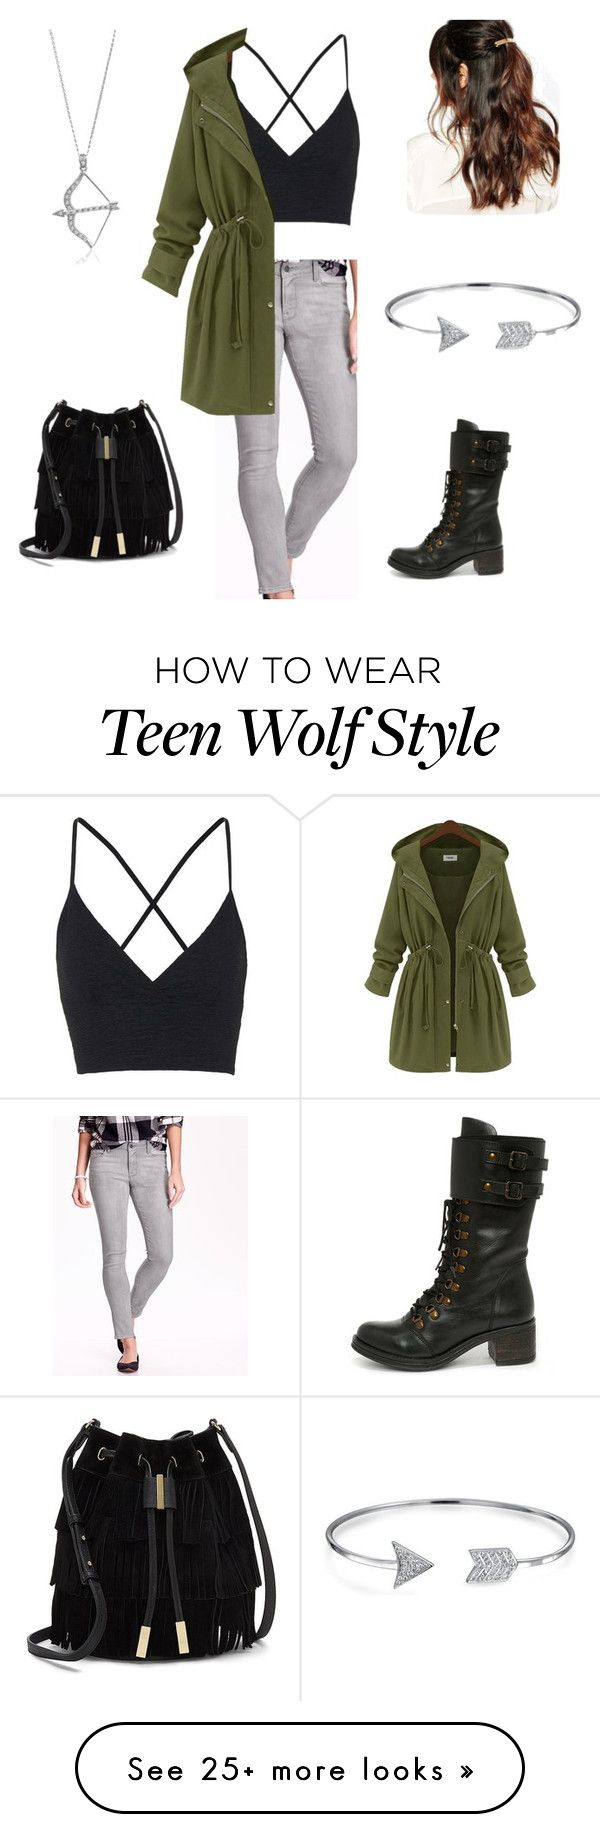 """Allison Argent Teen Wolf inspired outfit"" by kassid2020 on Polyvore featuring мода, Old Navy, Topshop, Report, Vince Camuto, Suzywan DELUXE, Bling Jewelry и BERRICLE"